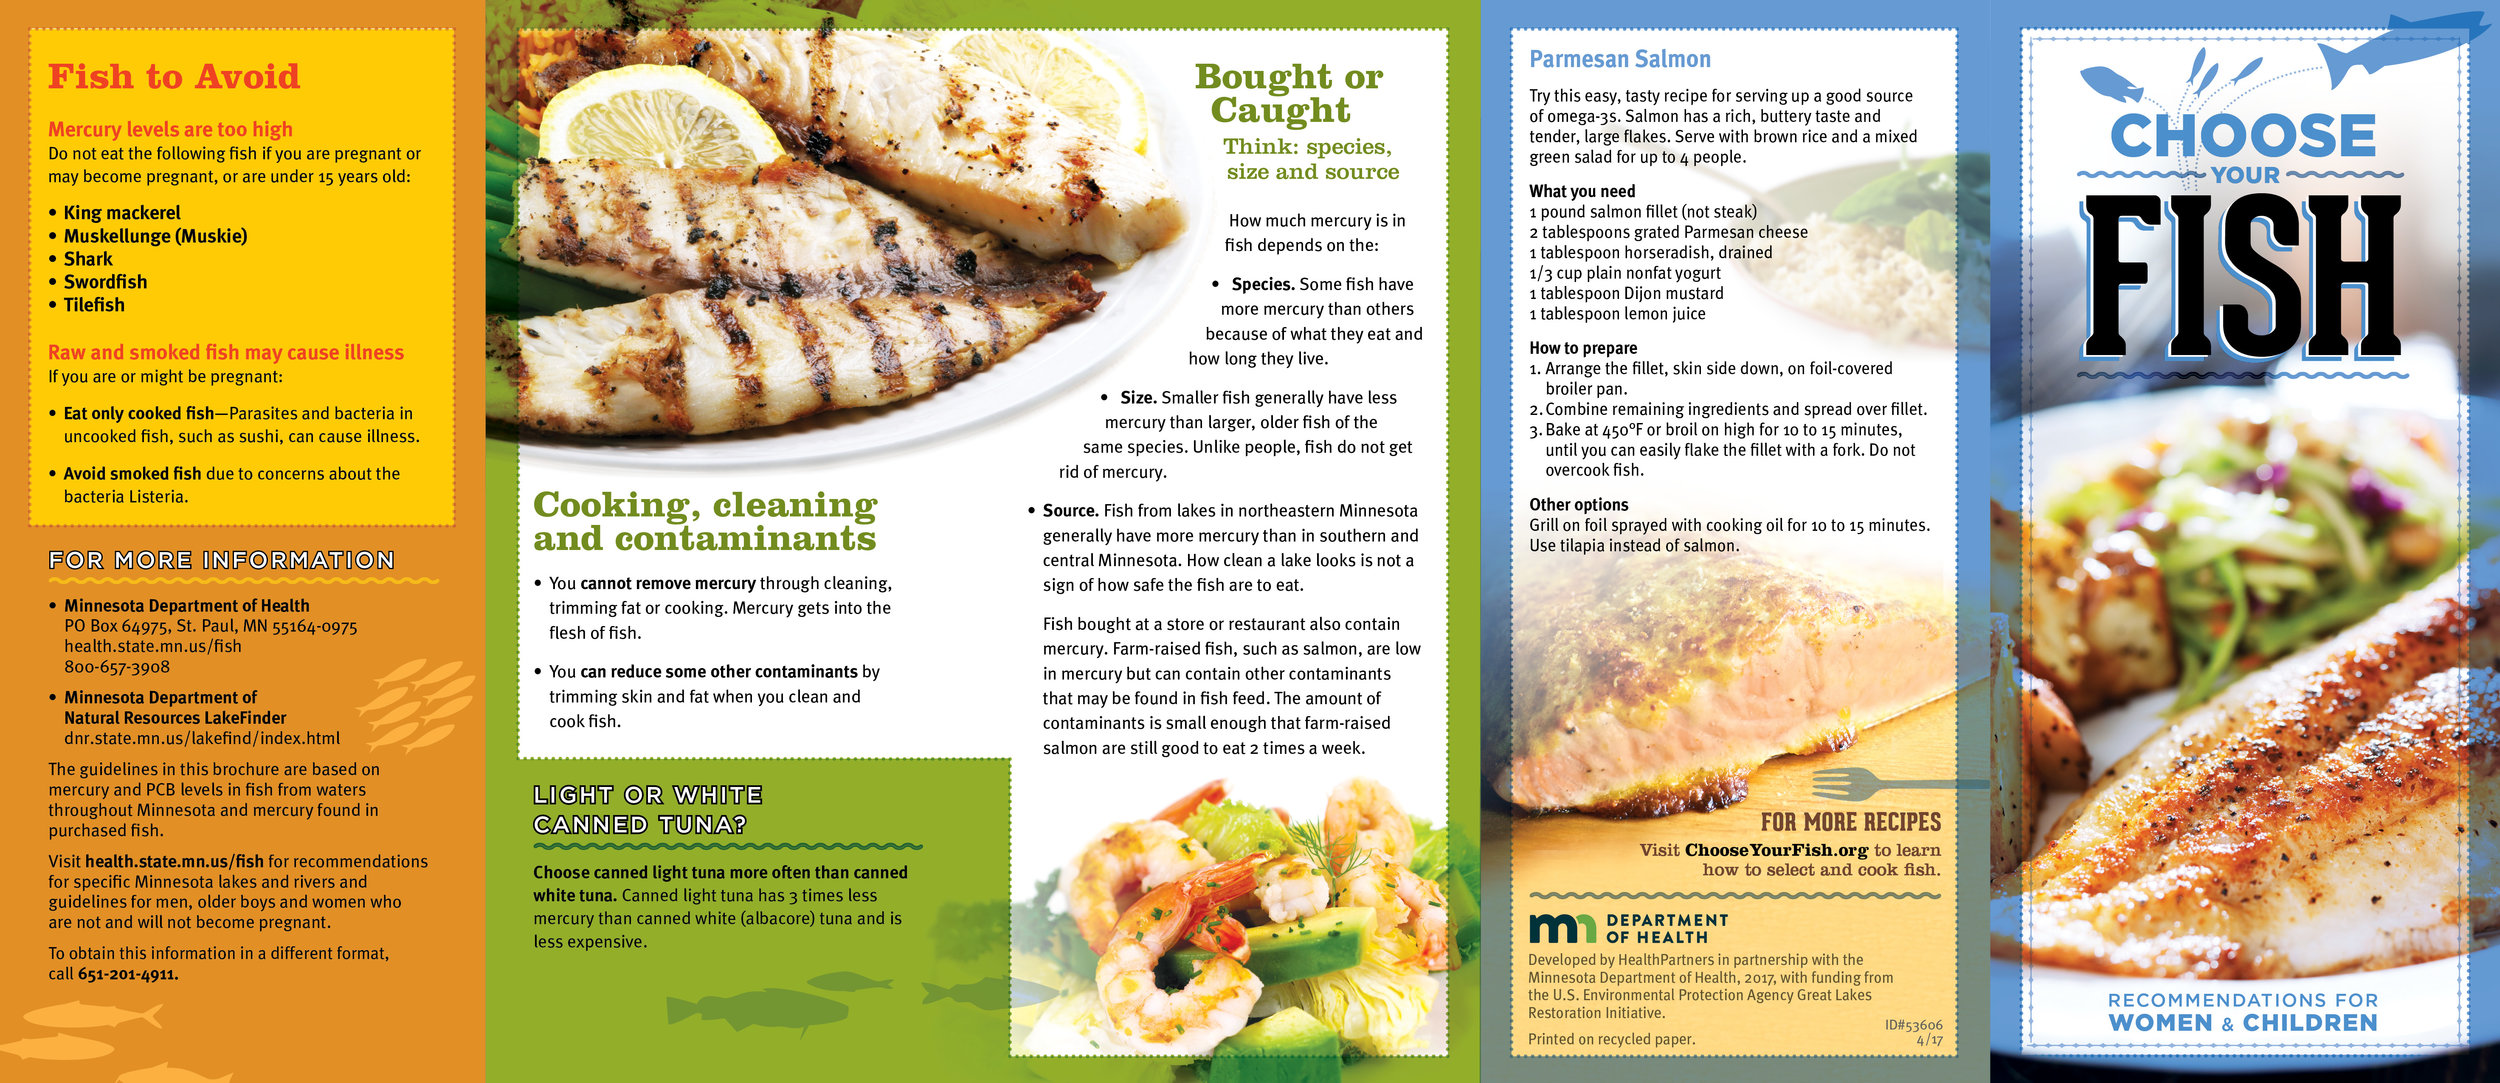 Fish-eating guidelines for women and children developed by HealthPartners, exterior spread of 5-panel brochure